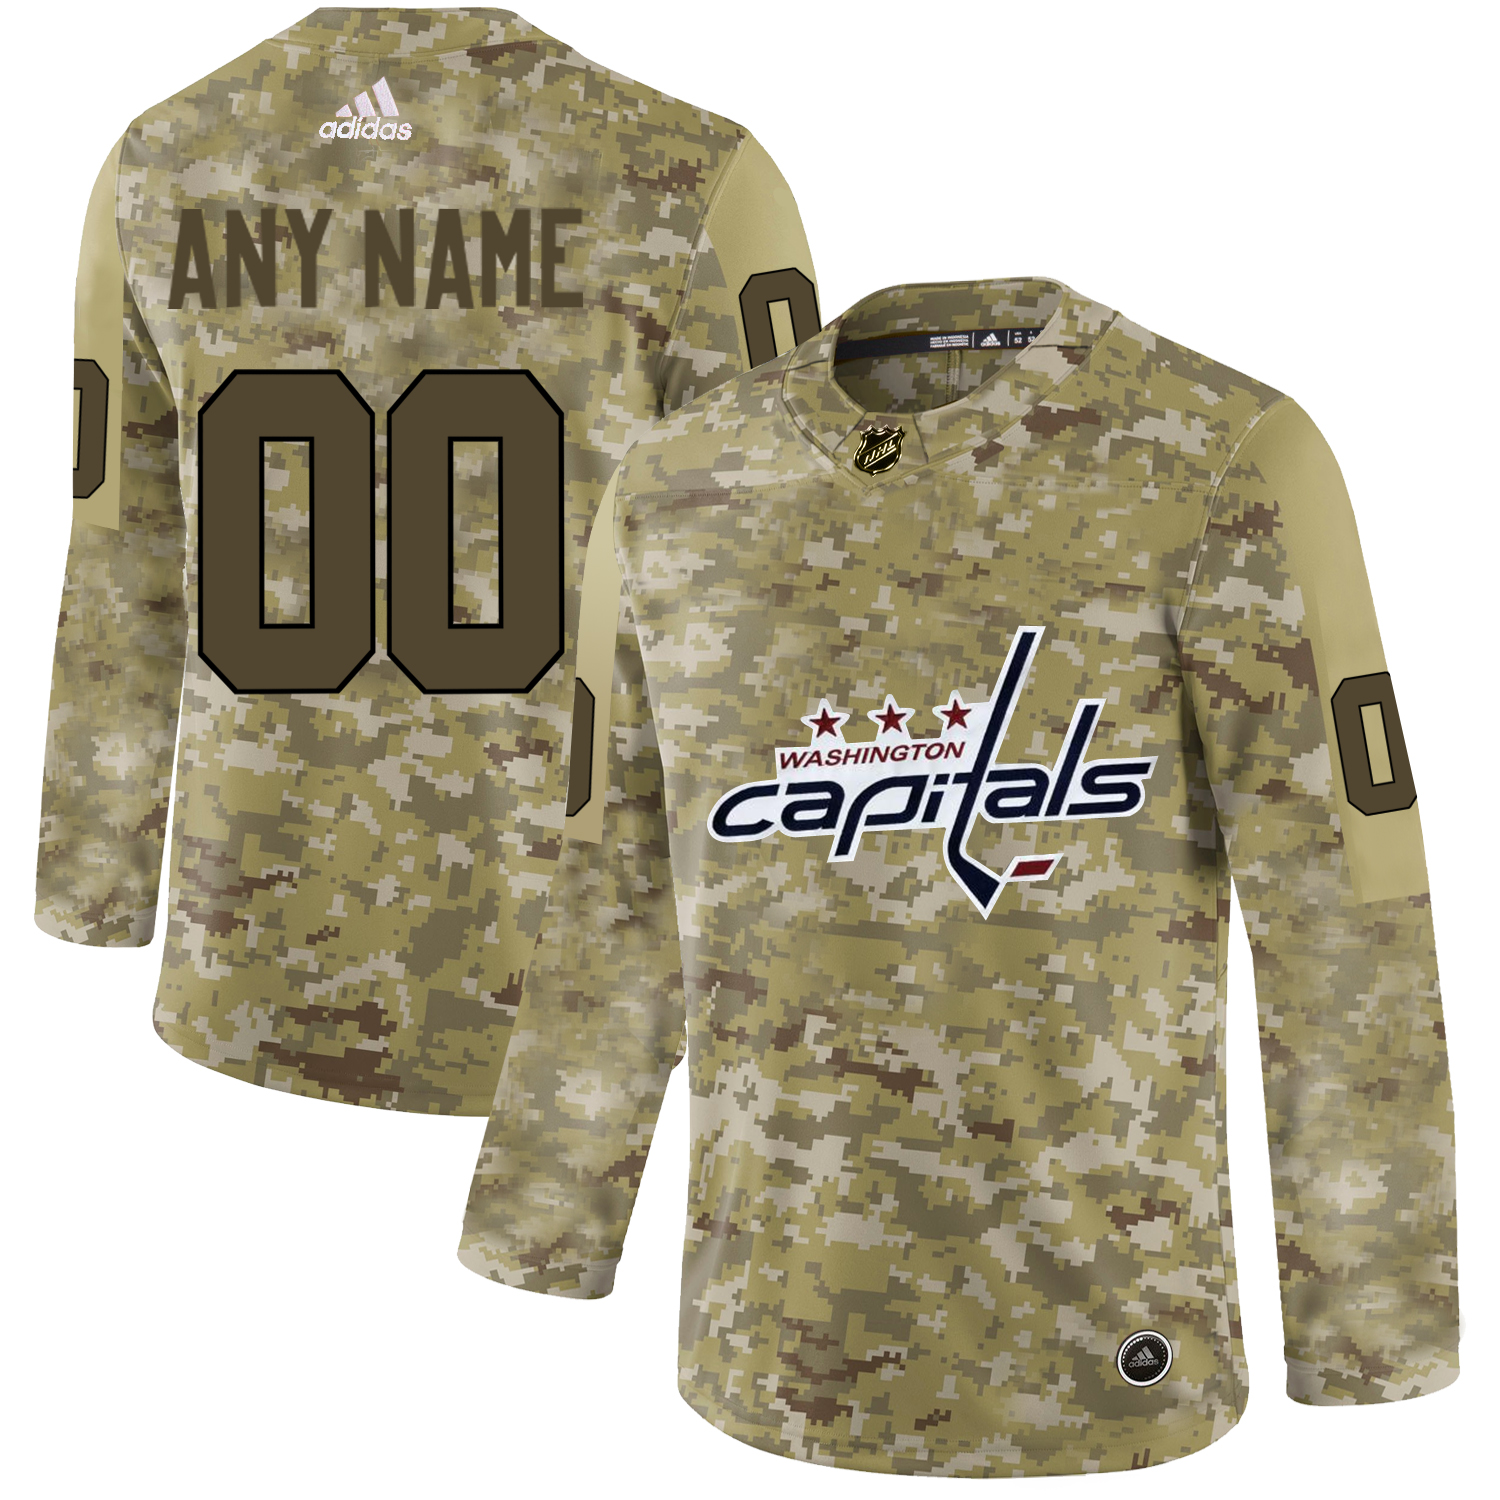 Washington Capitals Camo Men's Customized Adidas Jersey